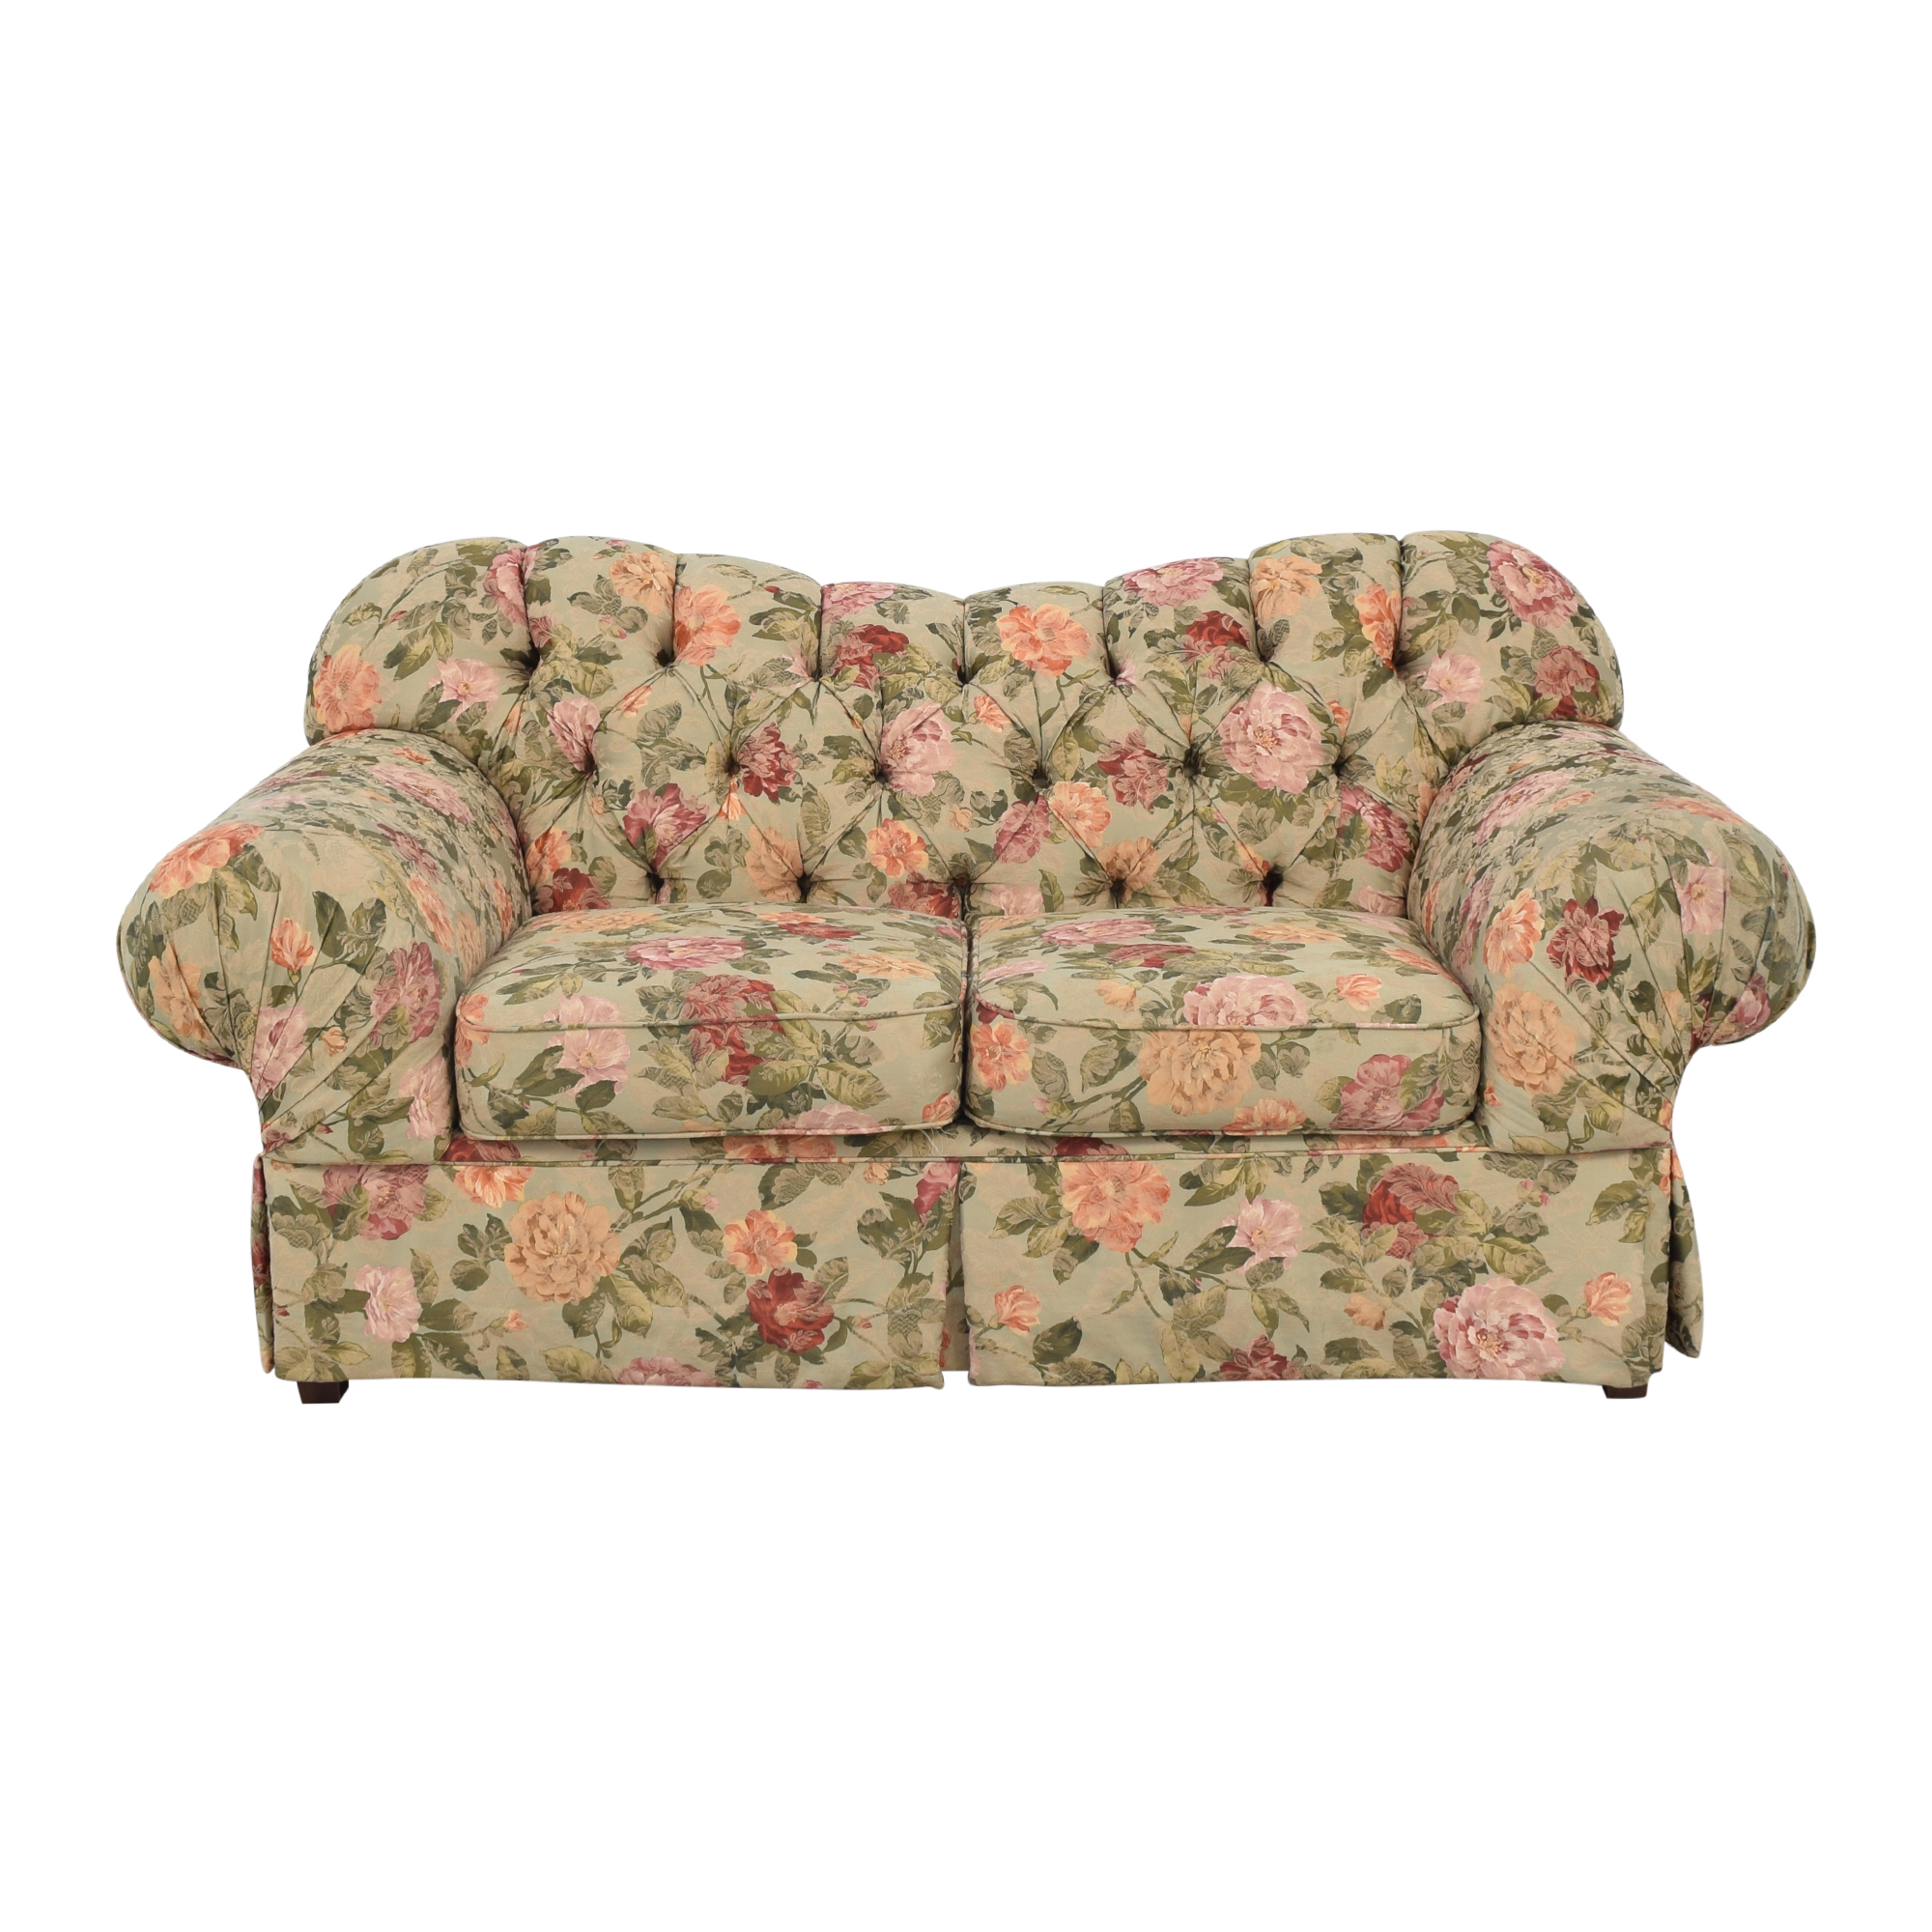 England Furniture England Furniture Loveseat multi